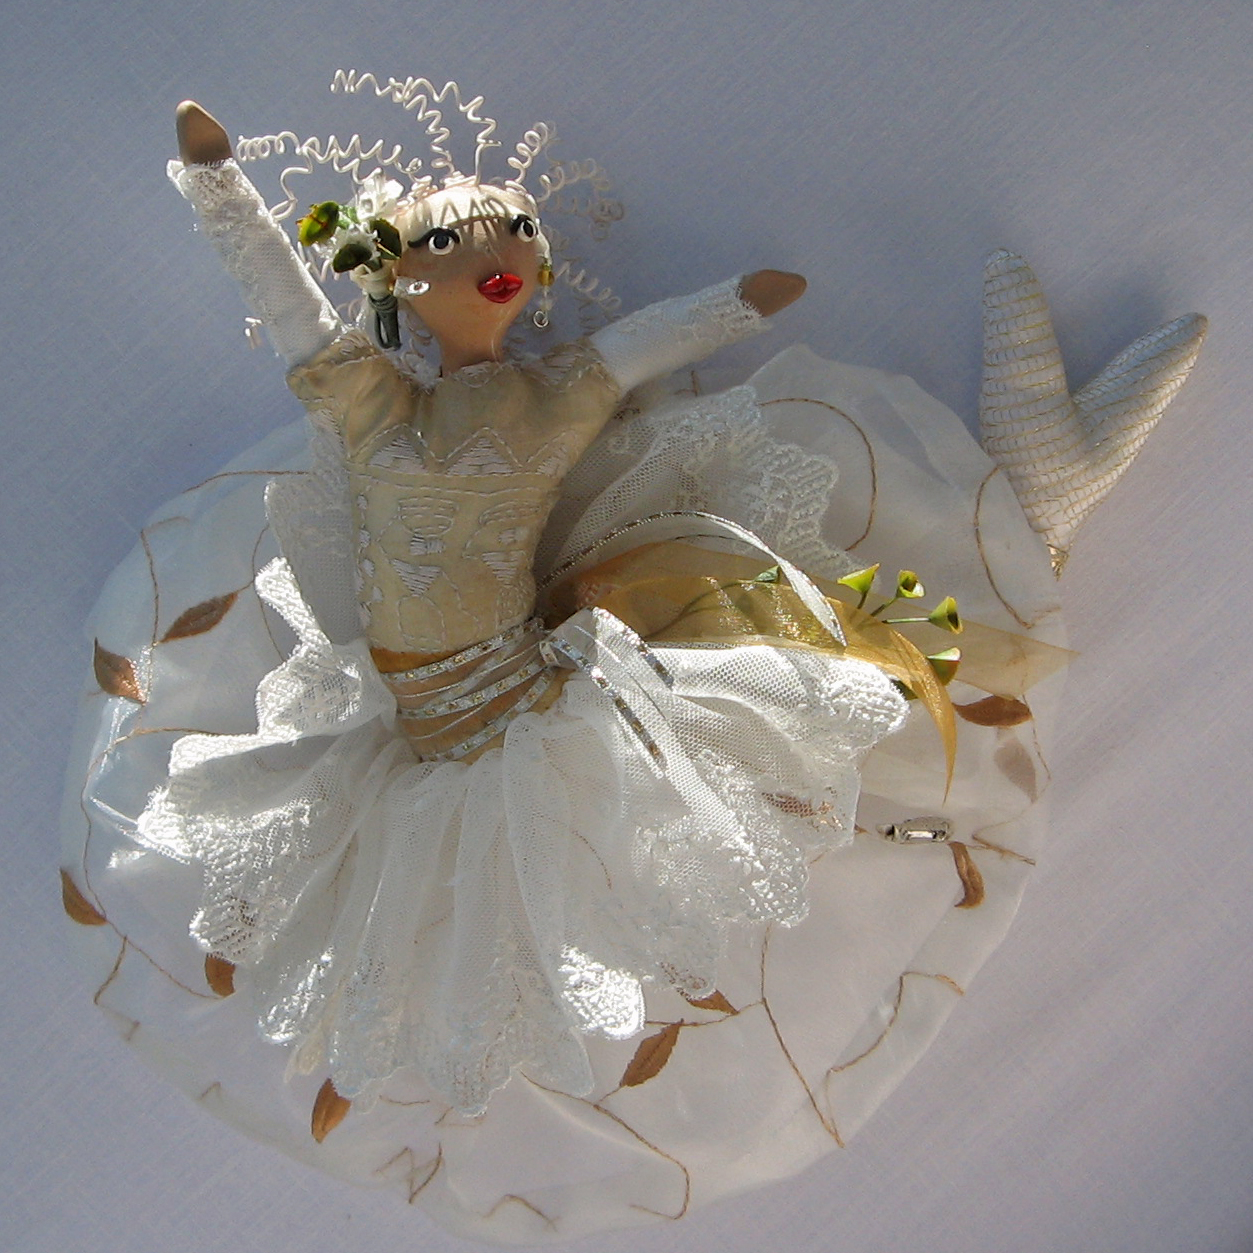 """""""Leukothea, Greek Goddess of the Sea."""" Soft-sculpture CallyWally made of fabric, faux foliage and Sculpey oven-baked clays. Approx. 12"""" tall."""